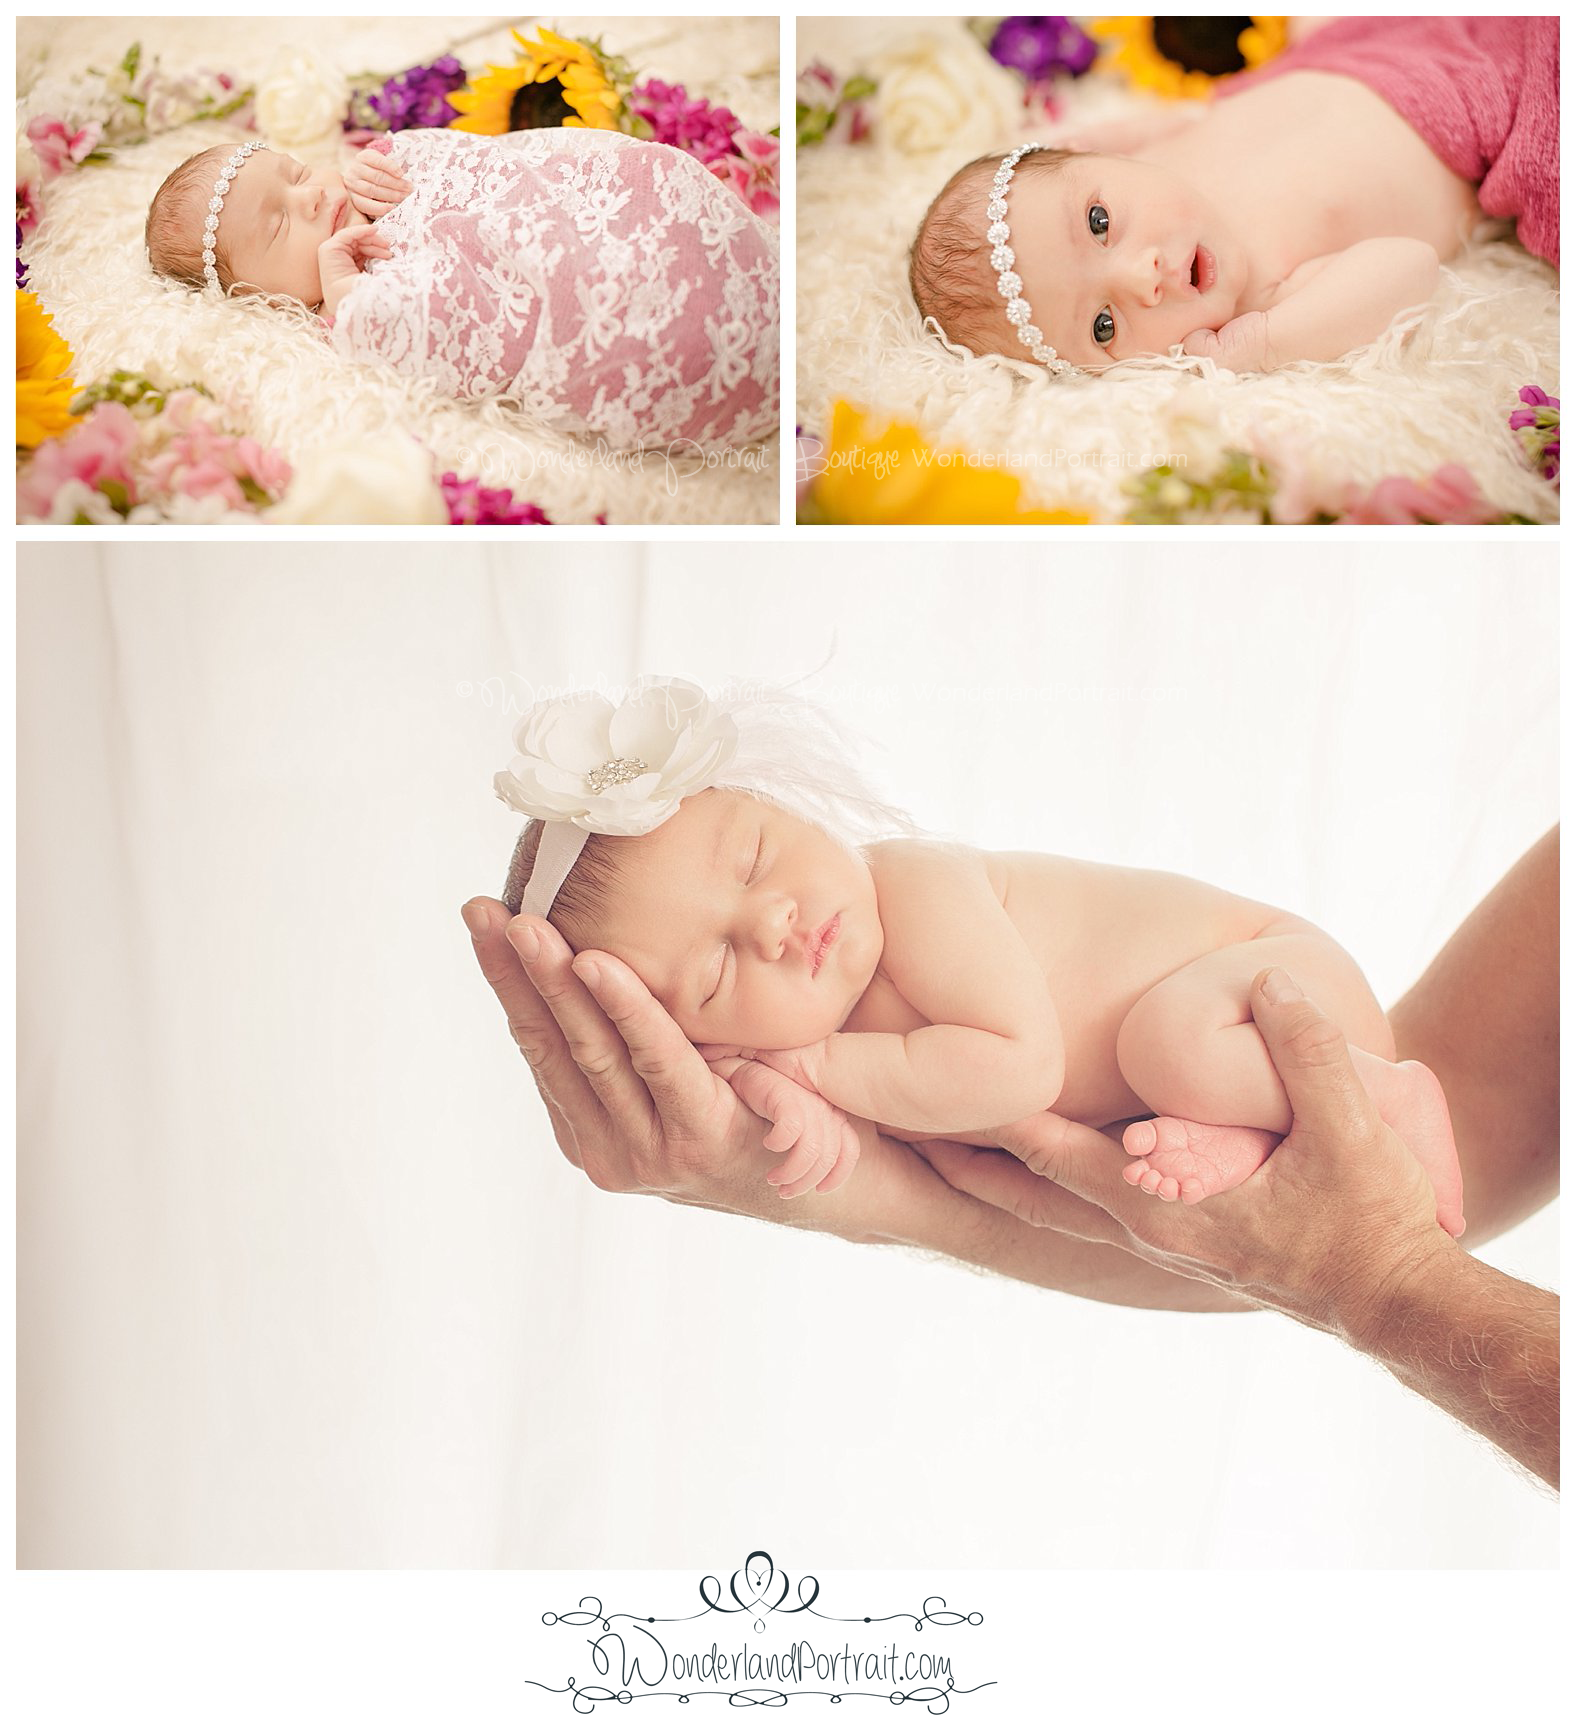 Bucks County Newborn Photographer  www.WonderlandPortrait.com